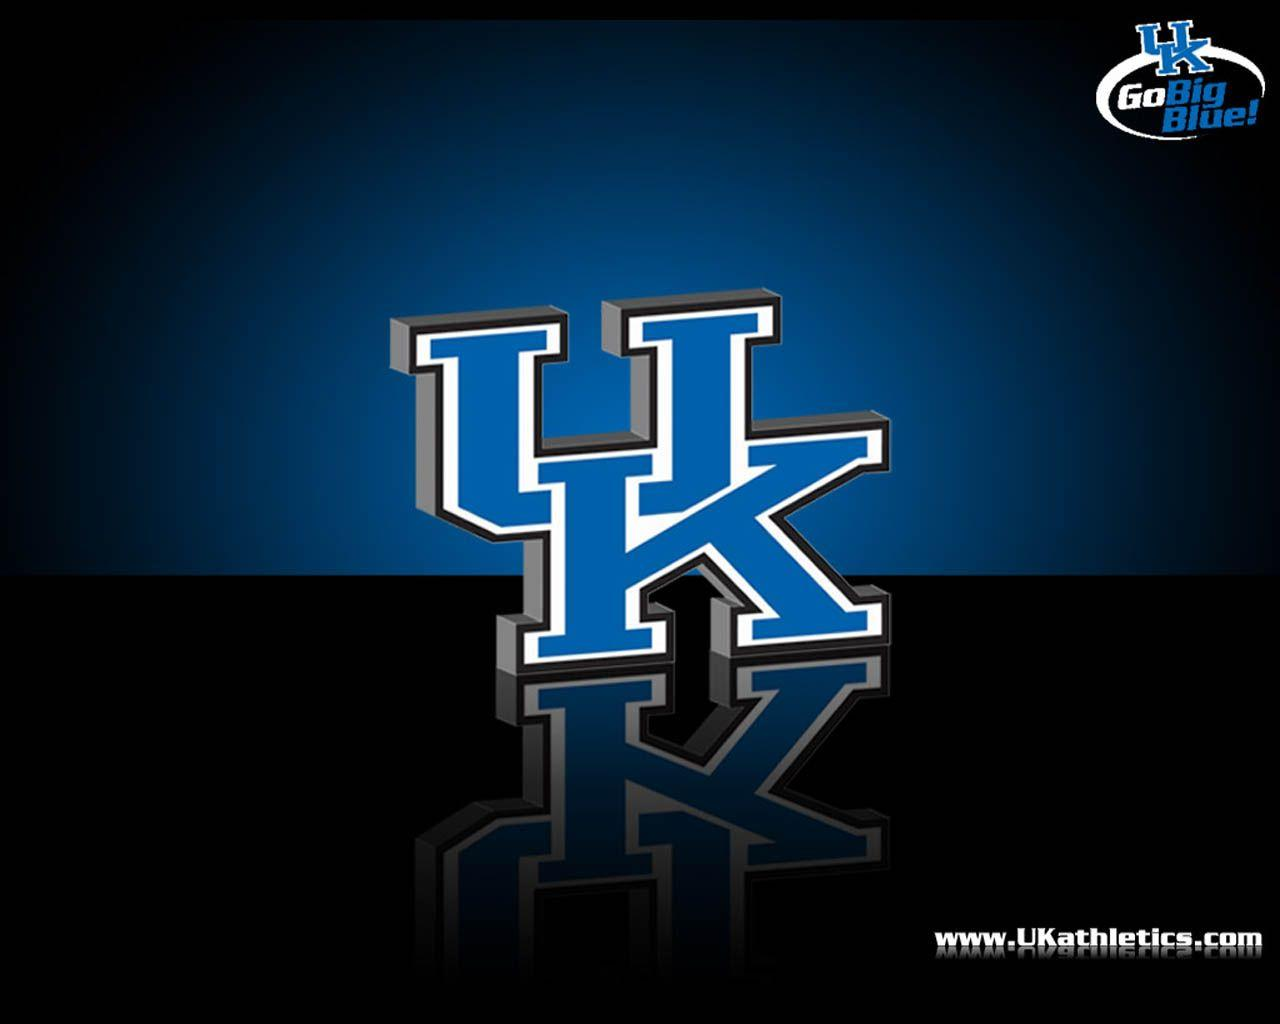 Kentucky Wildcats Wallpapers Download Free